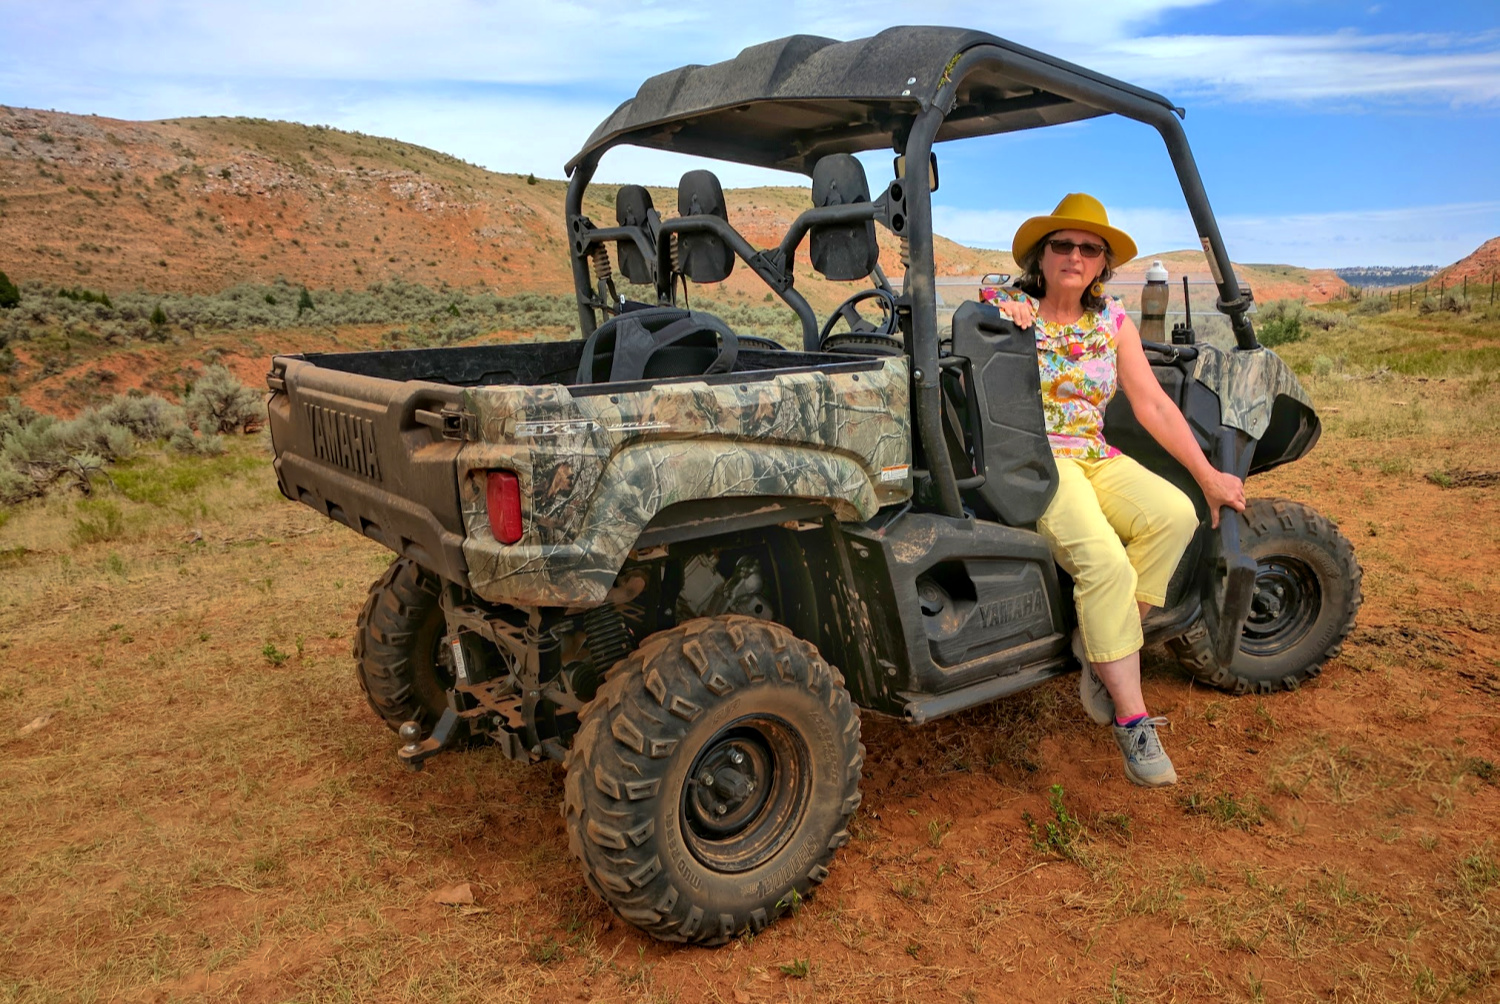 Add more wild to your Wild West vacation - Side by Side vehicle offered to guests at Red Reflet Ranch.